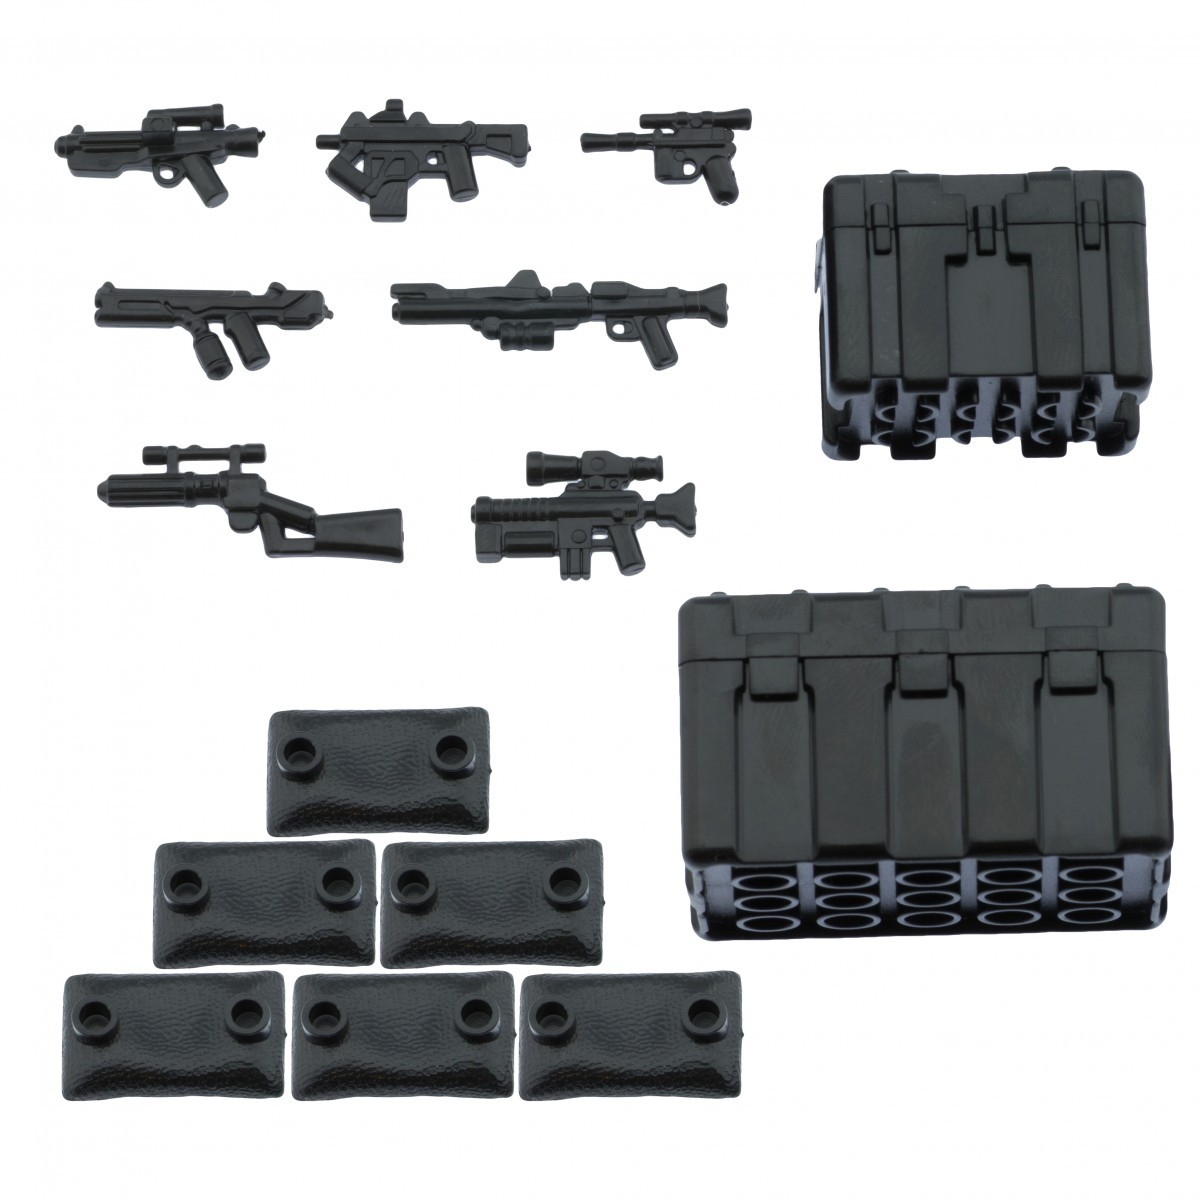 Inifig accessories weapons for lego brickarms minifigs army p39 advanced weapon pack with crates